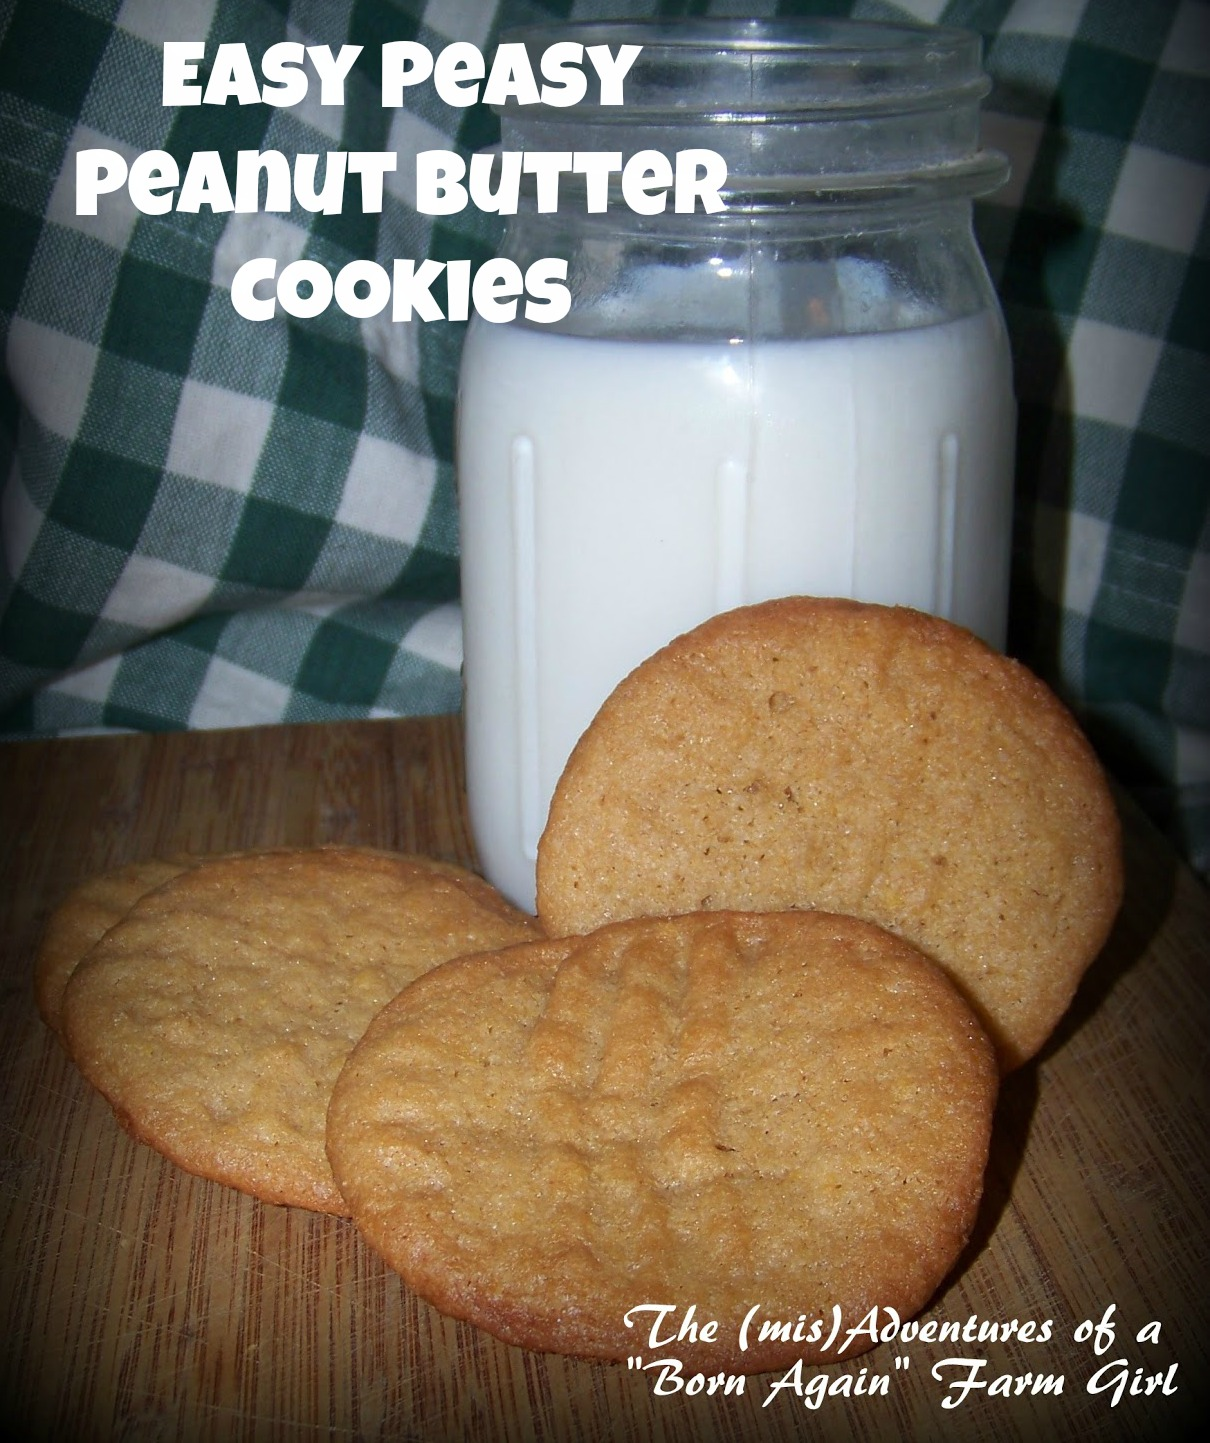 Easy Pease Peanut Butter Cookies